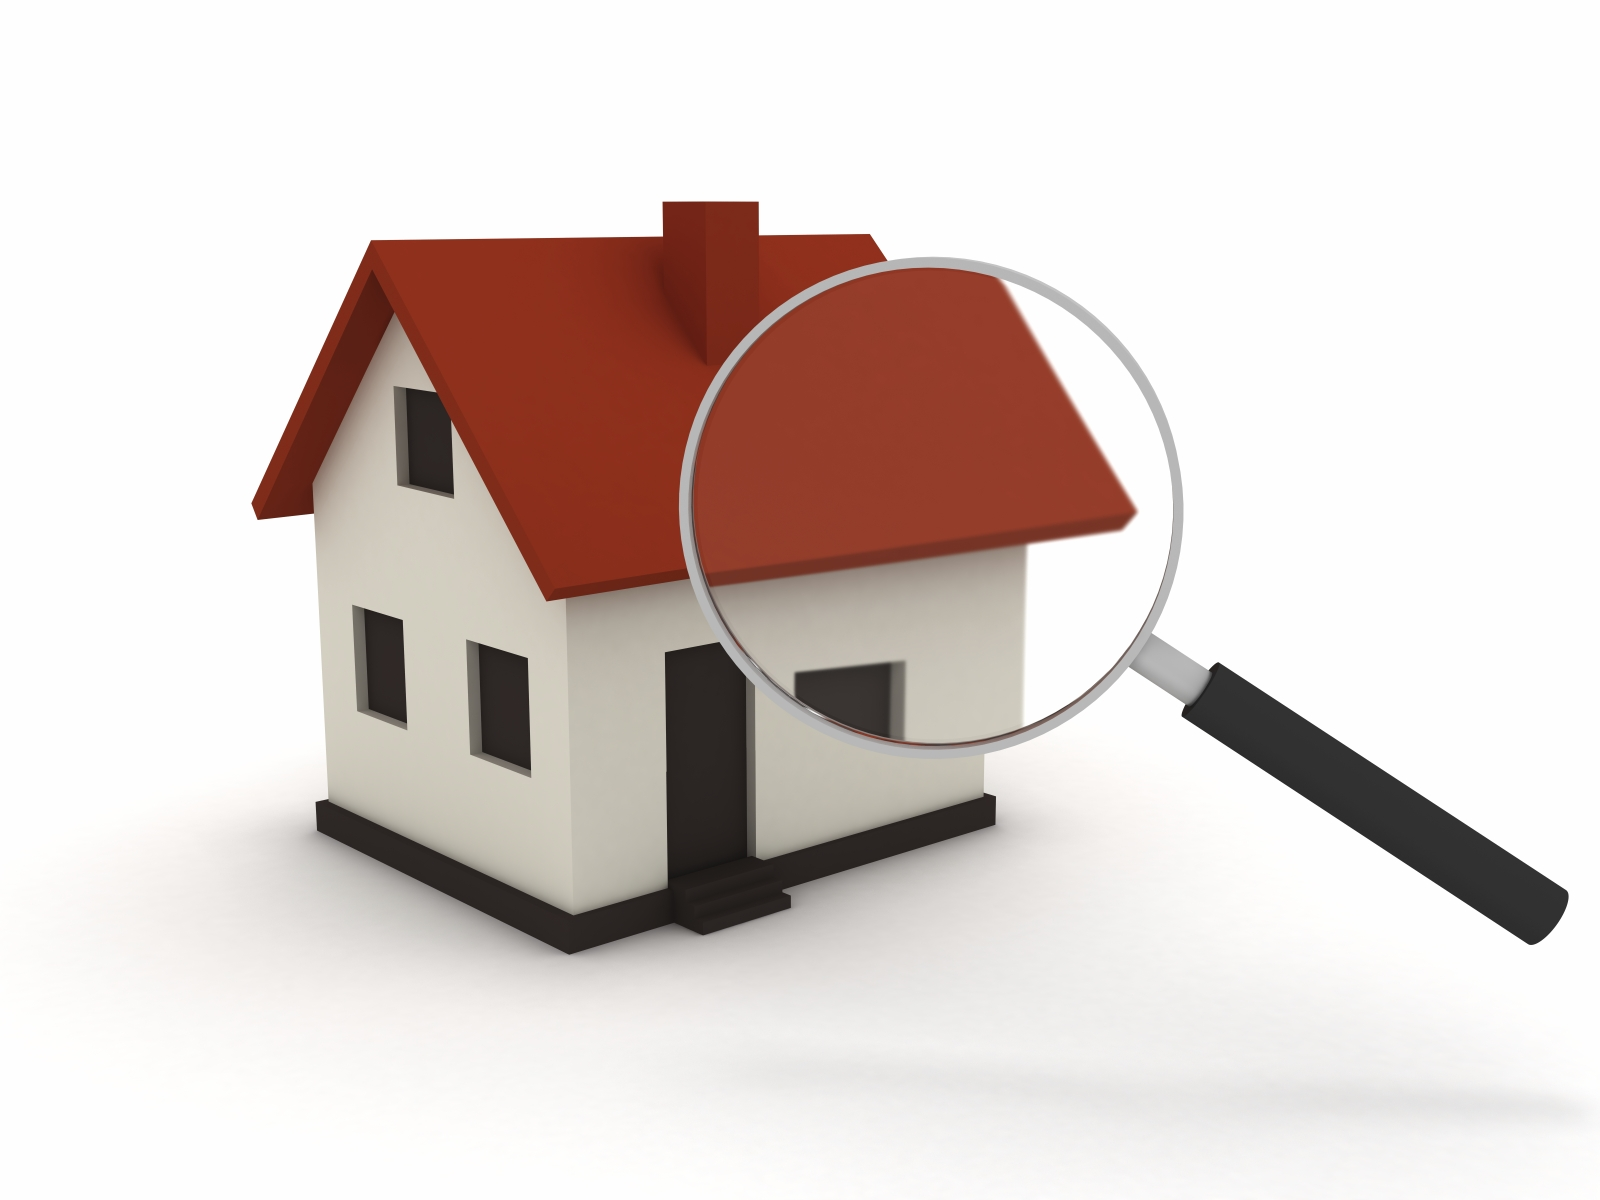 Real estate clipart land ownership. Leasehold vs fee simple